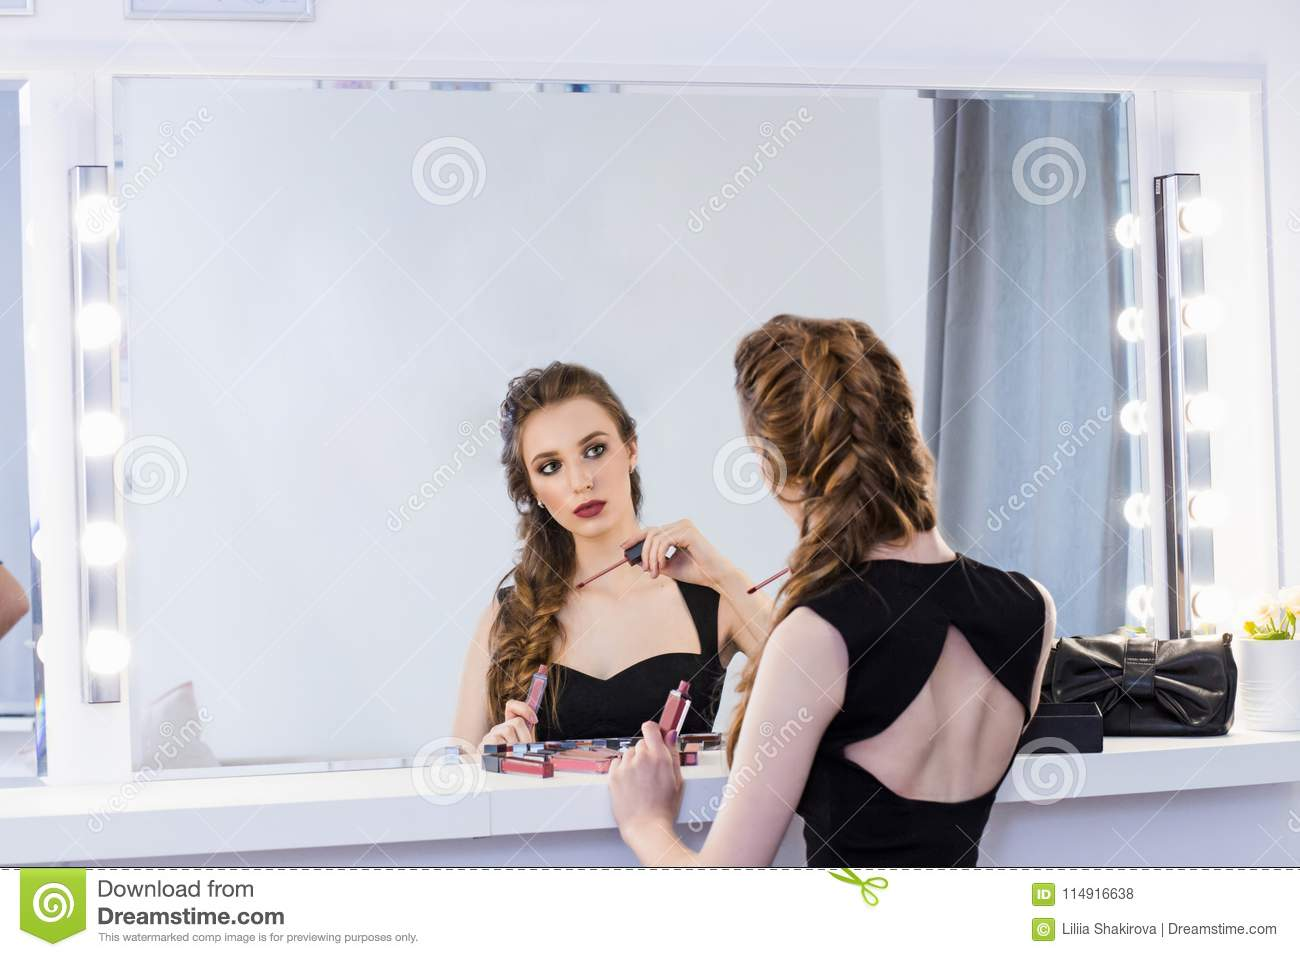 sitting on mirror Girl